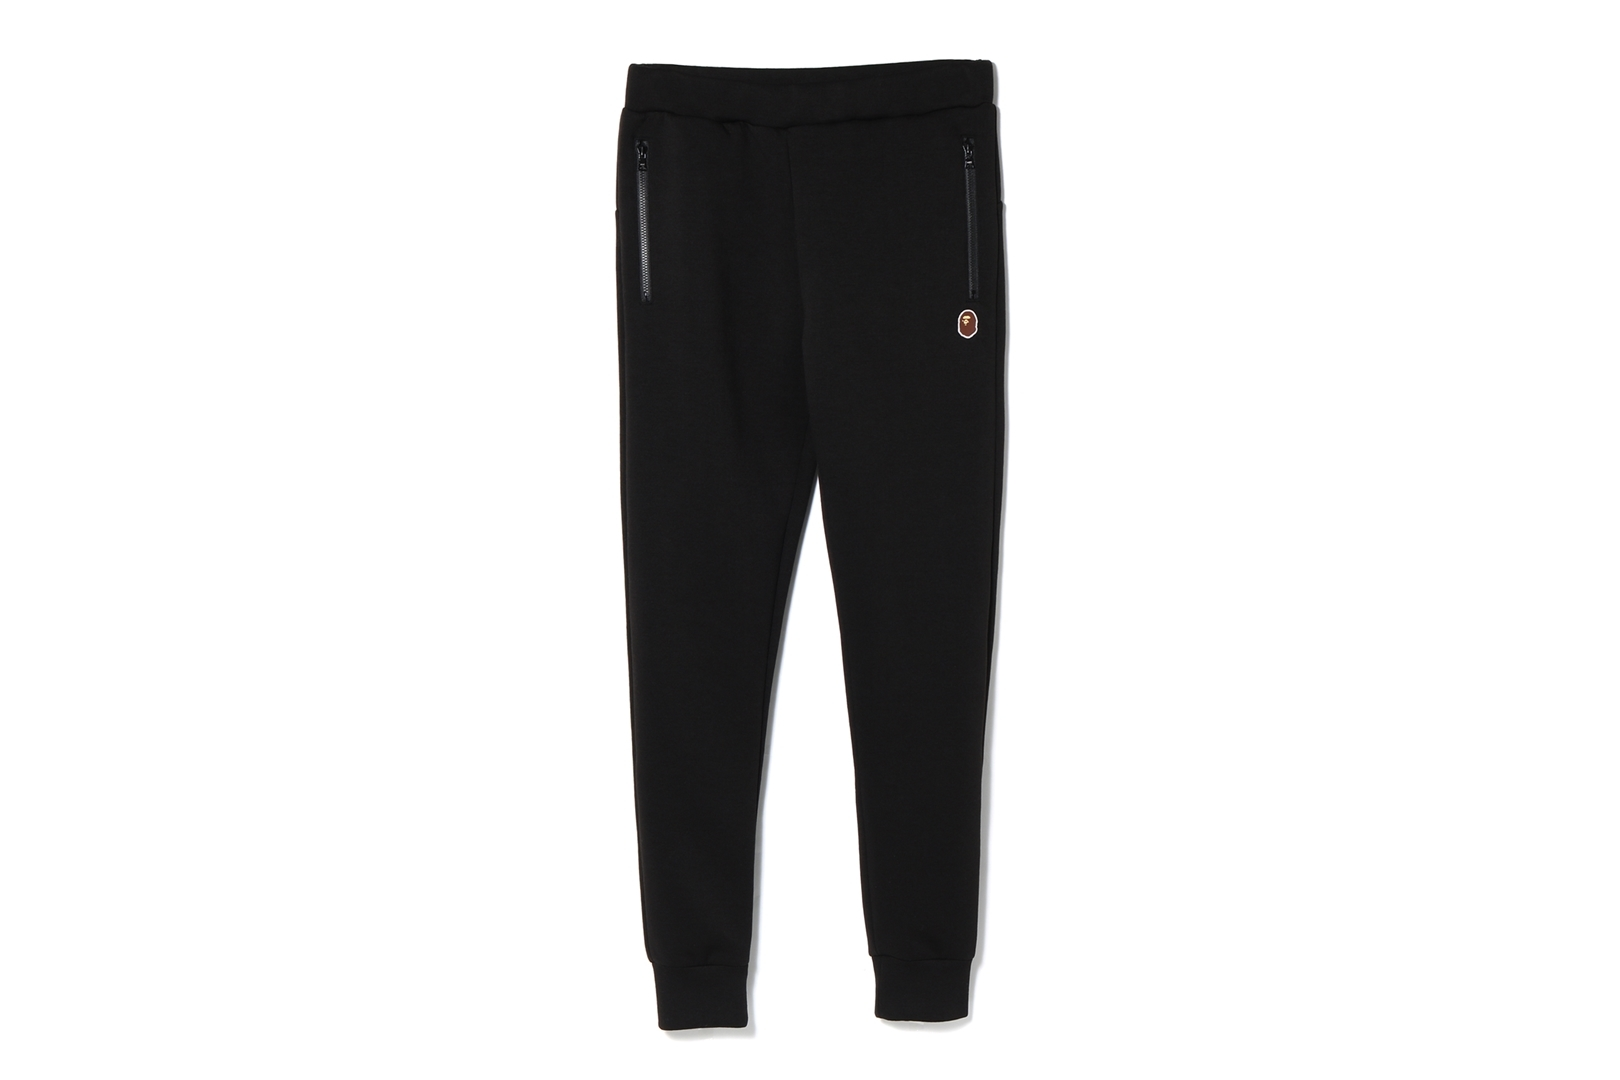 APE HEAD ONEPOINT SLIM SWEAT PANTS_a0174495_17164778.jpg